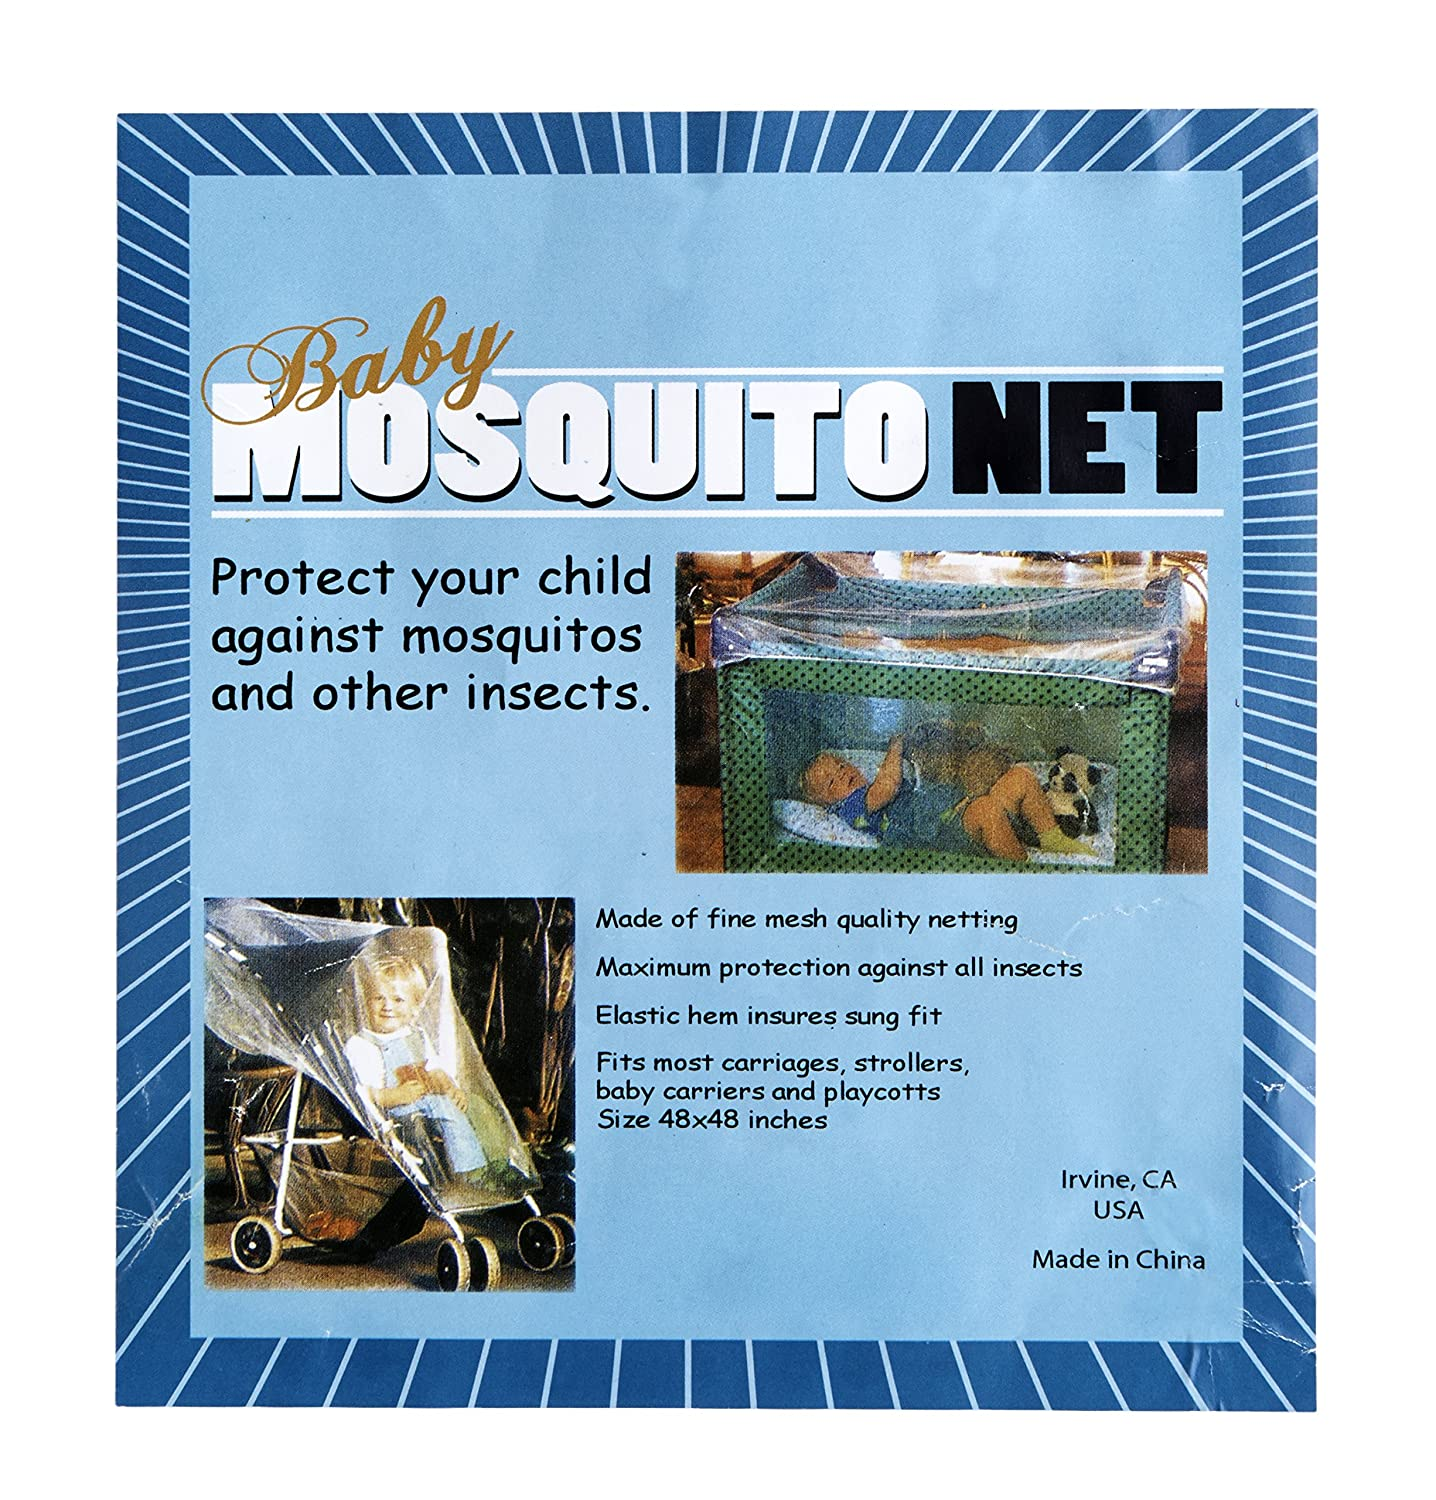 Baby Infant Protective Mesh Insect Mosquito Net for Strollers and Playards Bambini